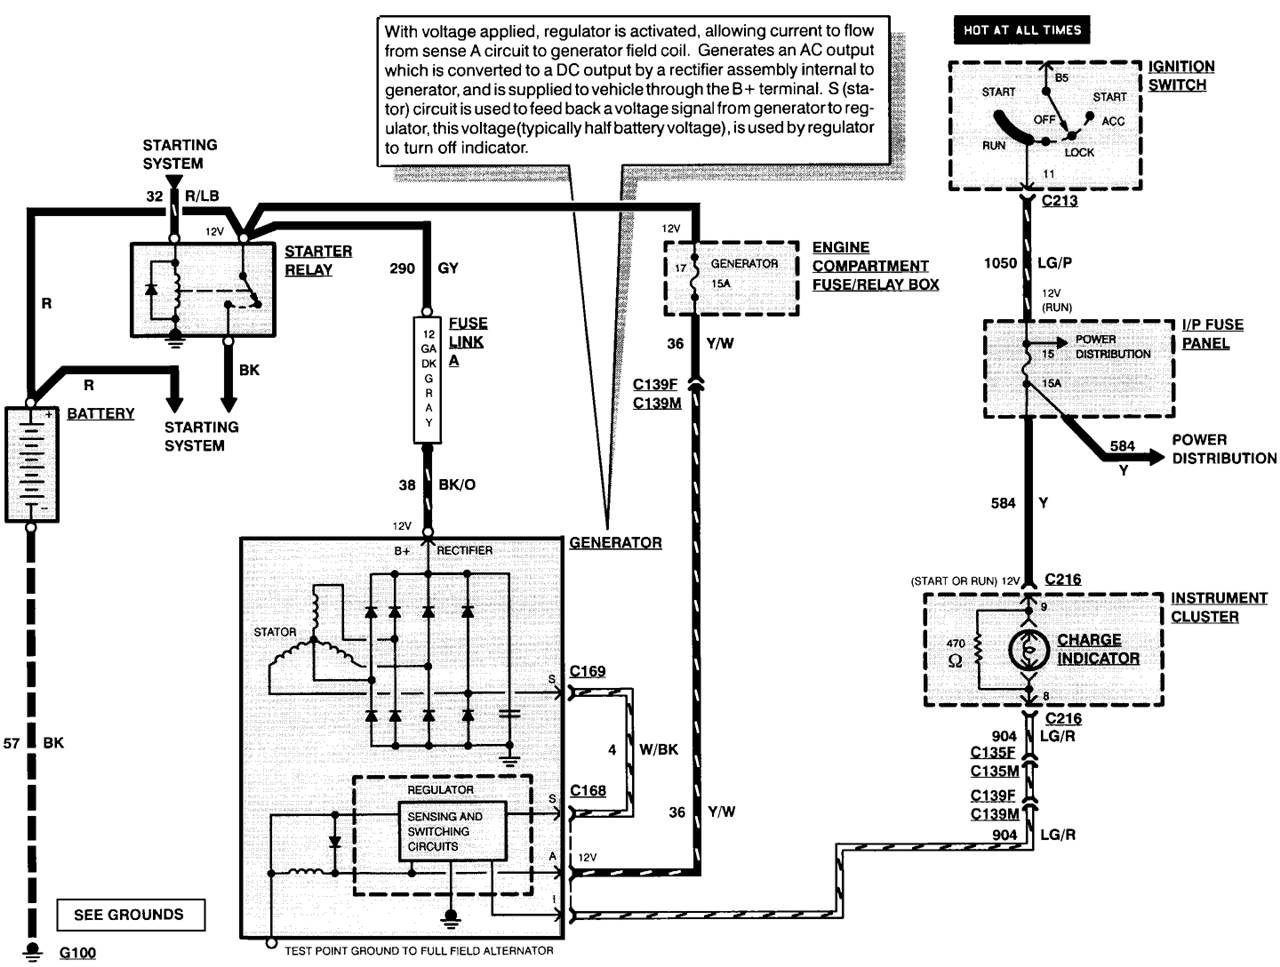 Ford alternator wiring diagram internal regulator?resized665%2C502 alternator wire diagram efcaviation com gm internal regulator wiring diagram at virtualis.co